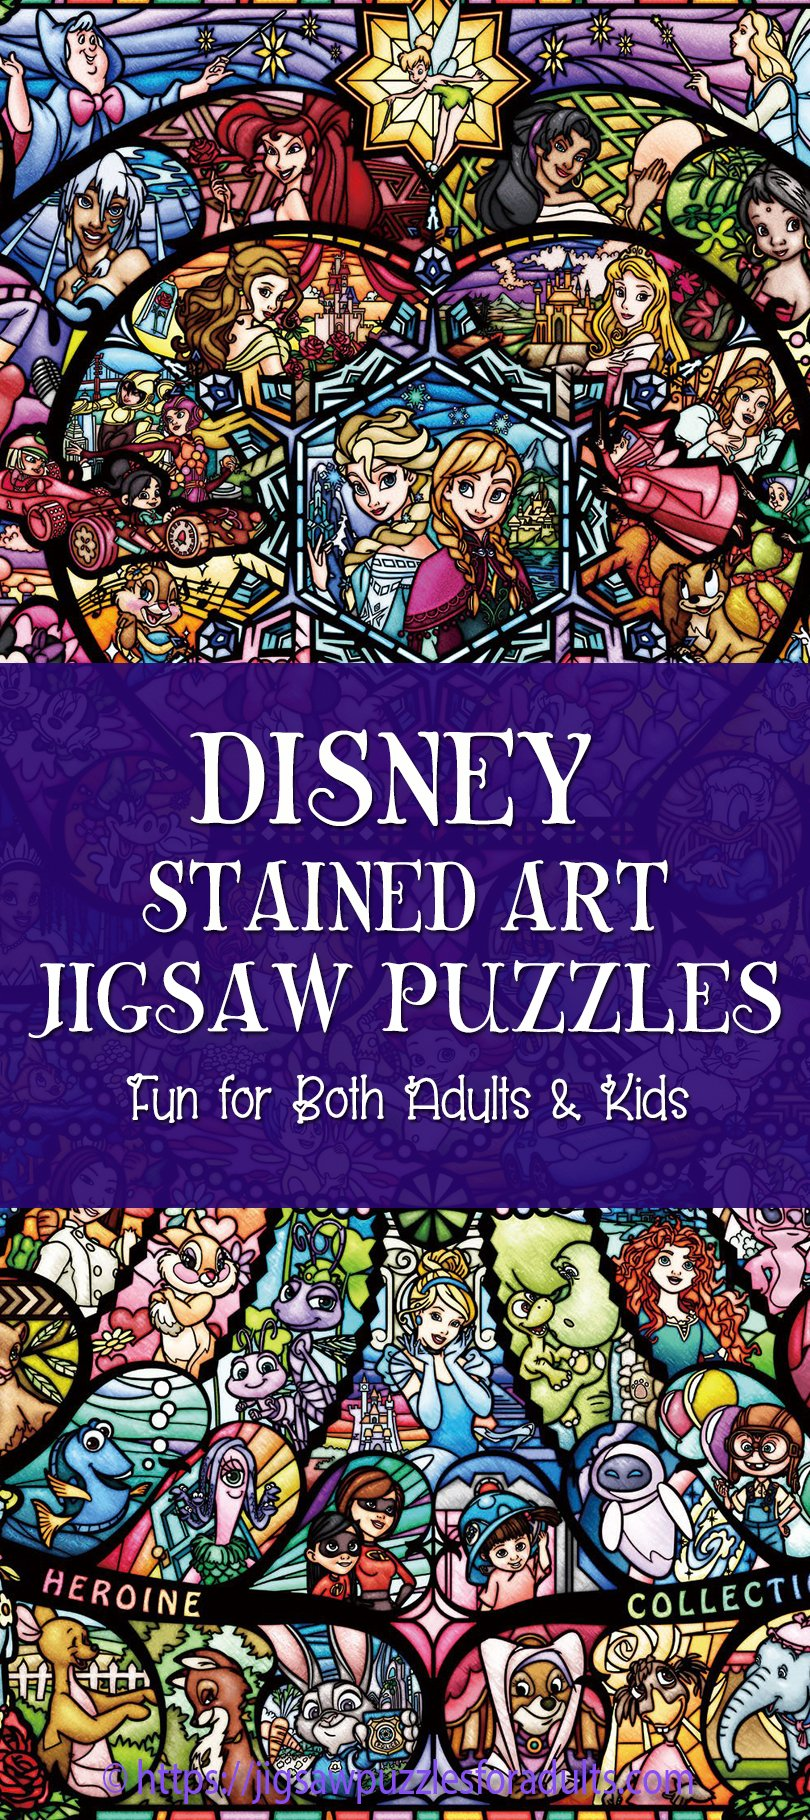 Disney stained art jigsaw puzzle